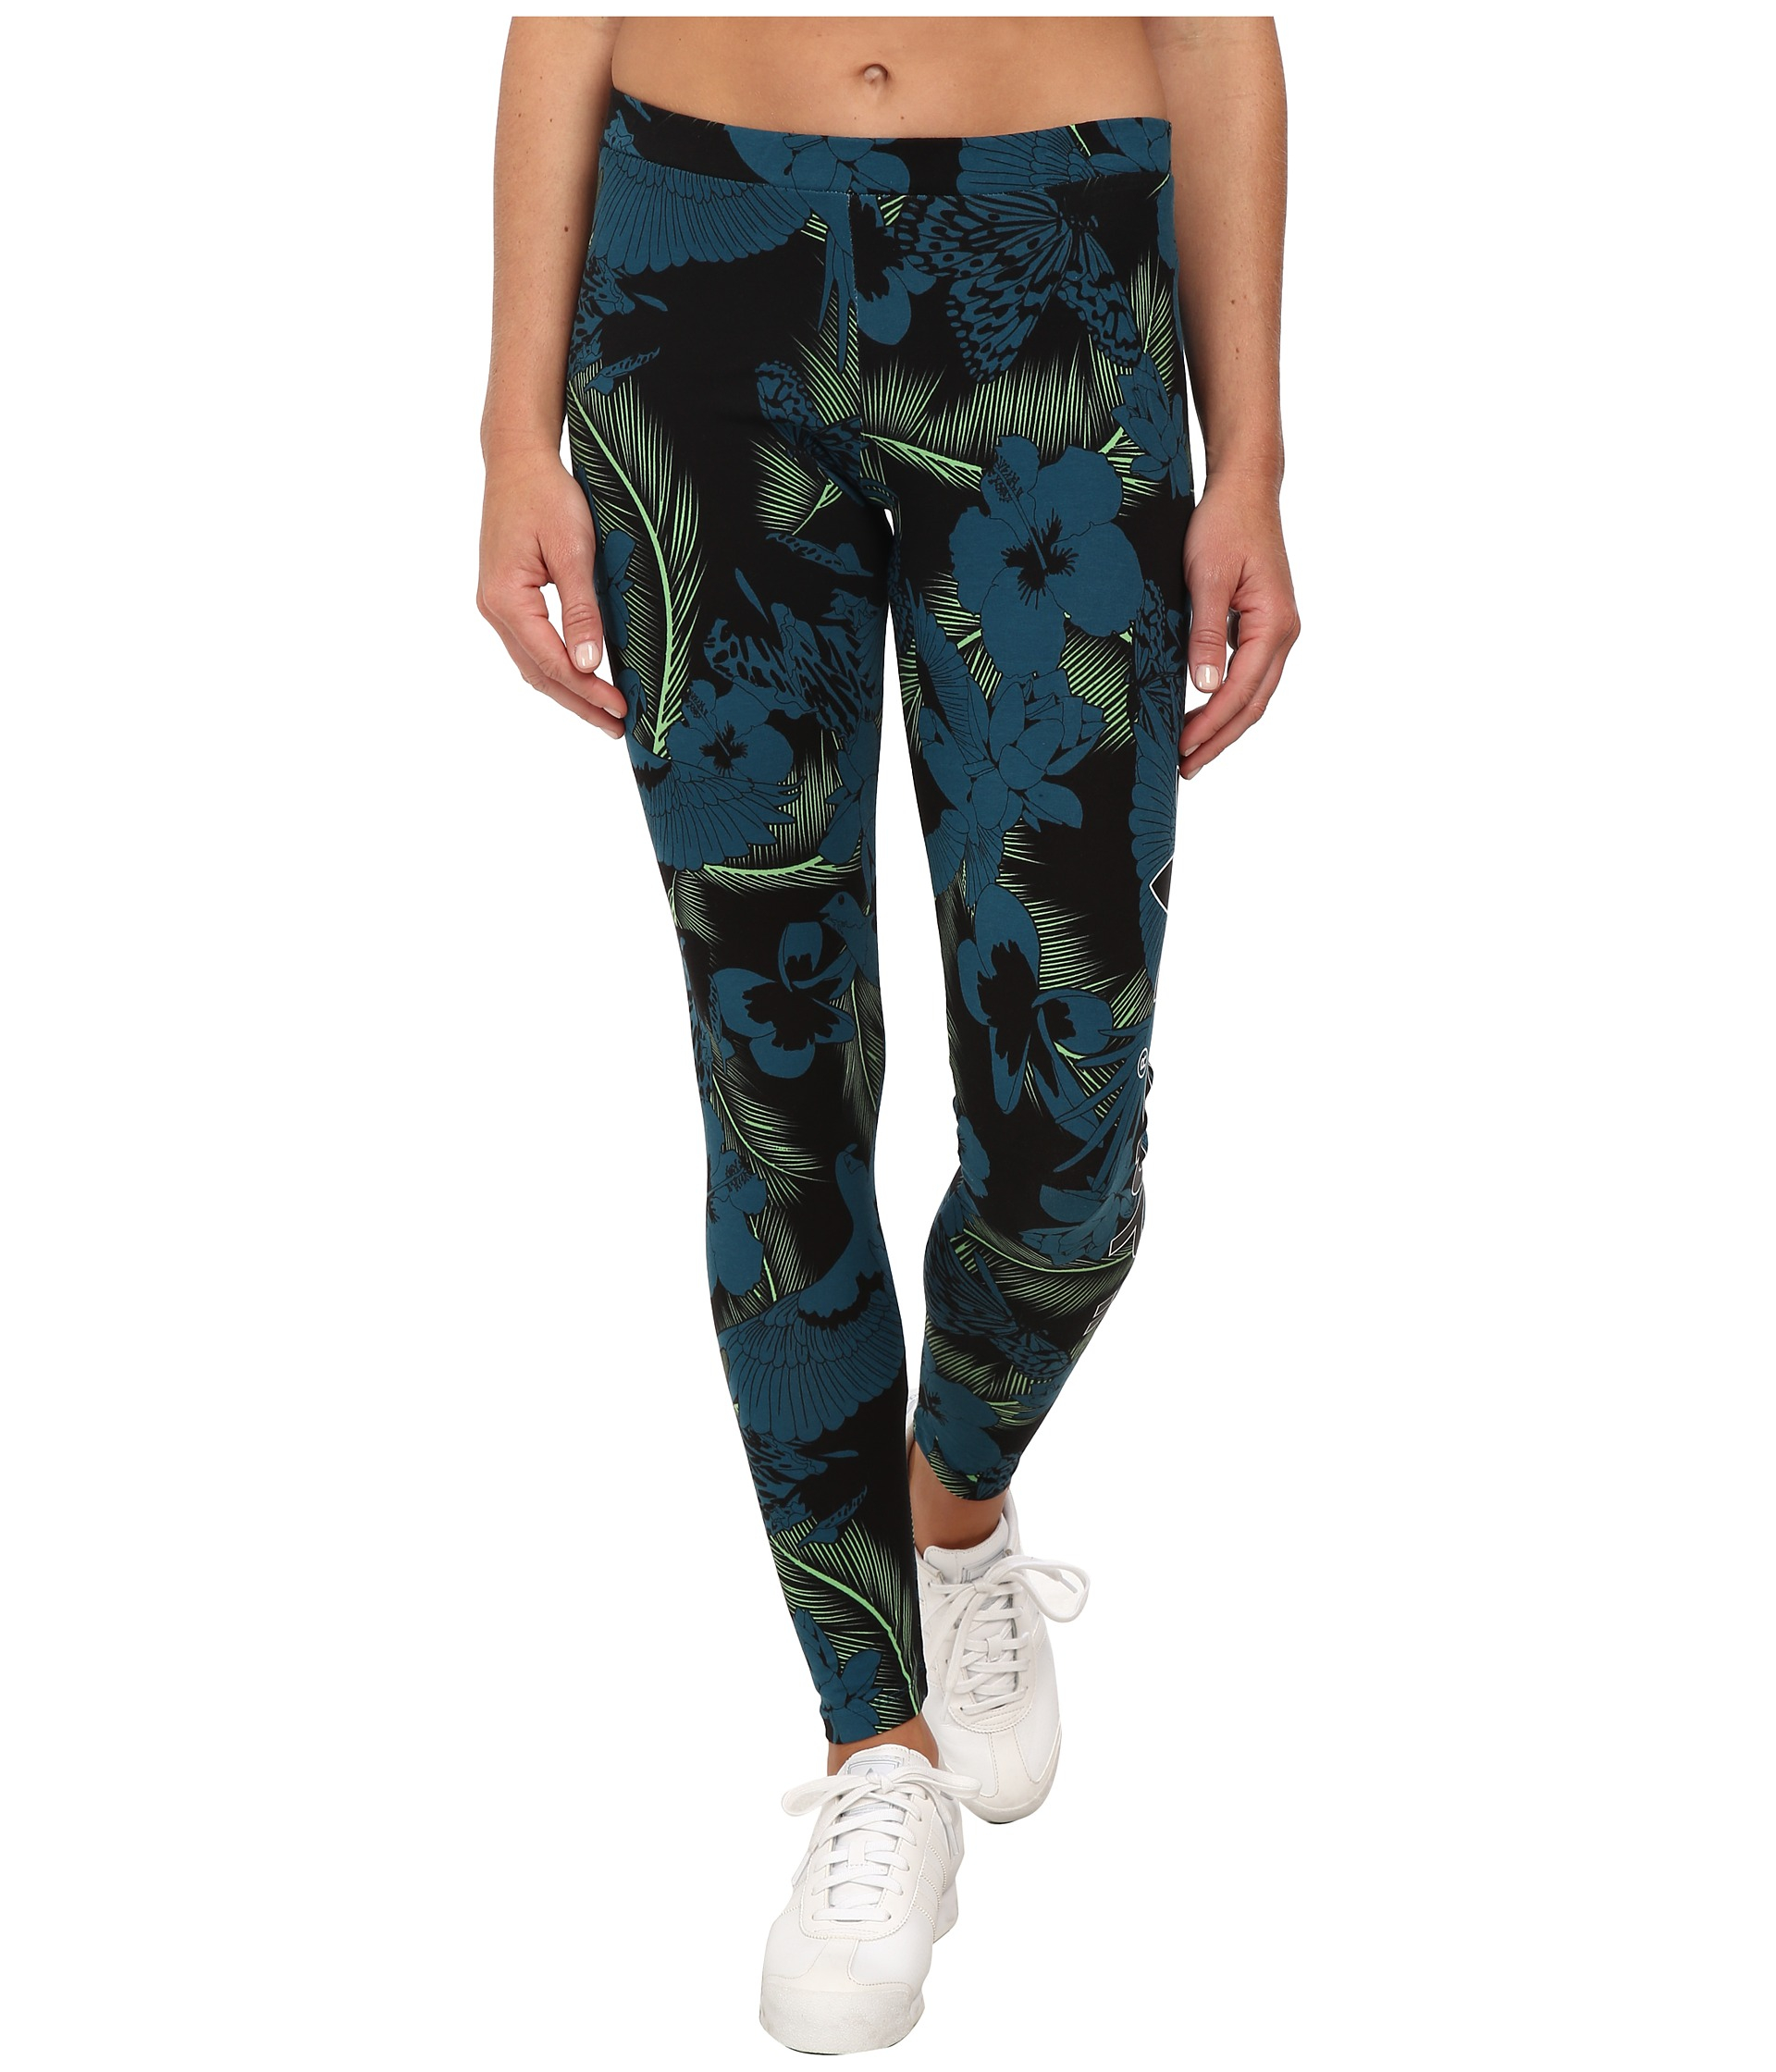 5fa3b09c5ded1a adidas Originals Hawaii Legging in Blue - Lyst